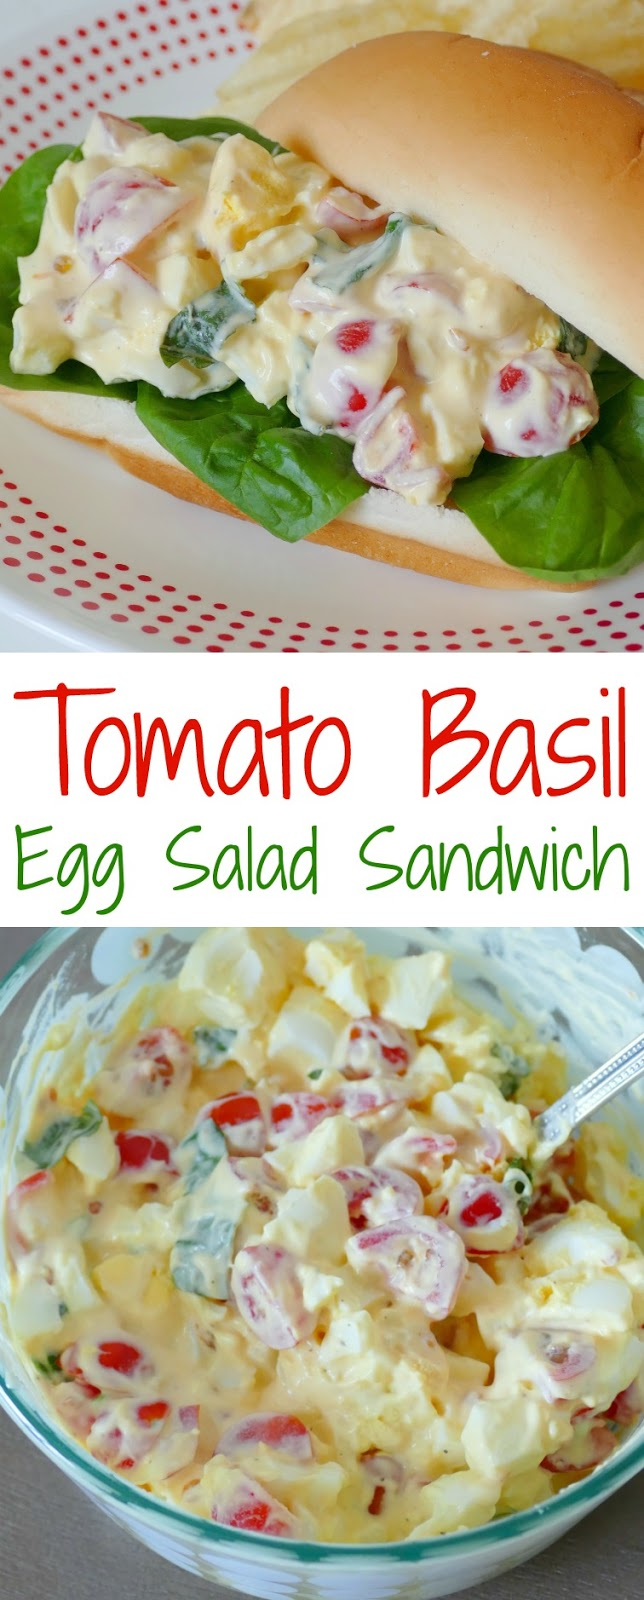 This egg salad sandwich is a perfect lunch when served with soup, fruit, chips or veggies! The tomato basil flavor is unique and so delicious! Serve on bread, wraps, buns, croissants or baguettes!